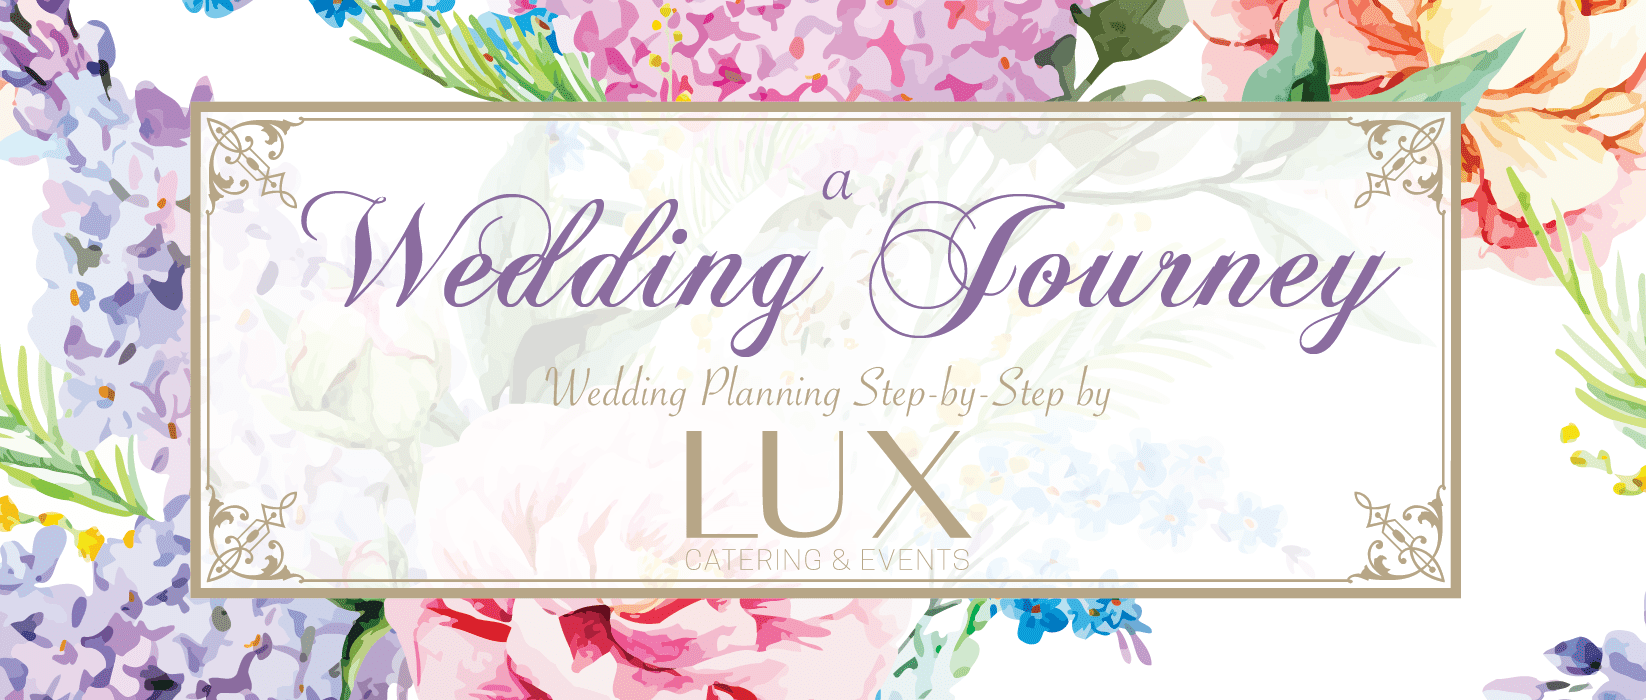 Salt Lake, Utah wedding planning and wedding catering by LUX Catering & Events Utah Wedding Venue Thomas S Monson Center Featured Utah Wedding Venue: Thomas S. Monson Center weddingjourney LUX 01